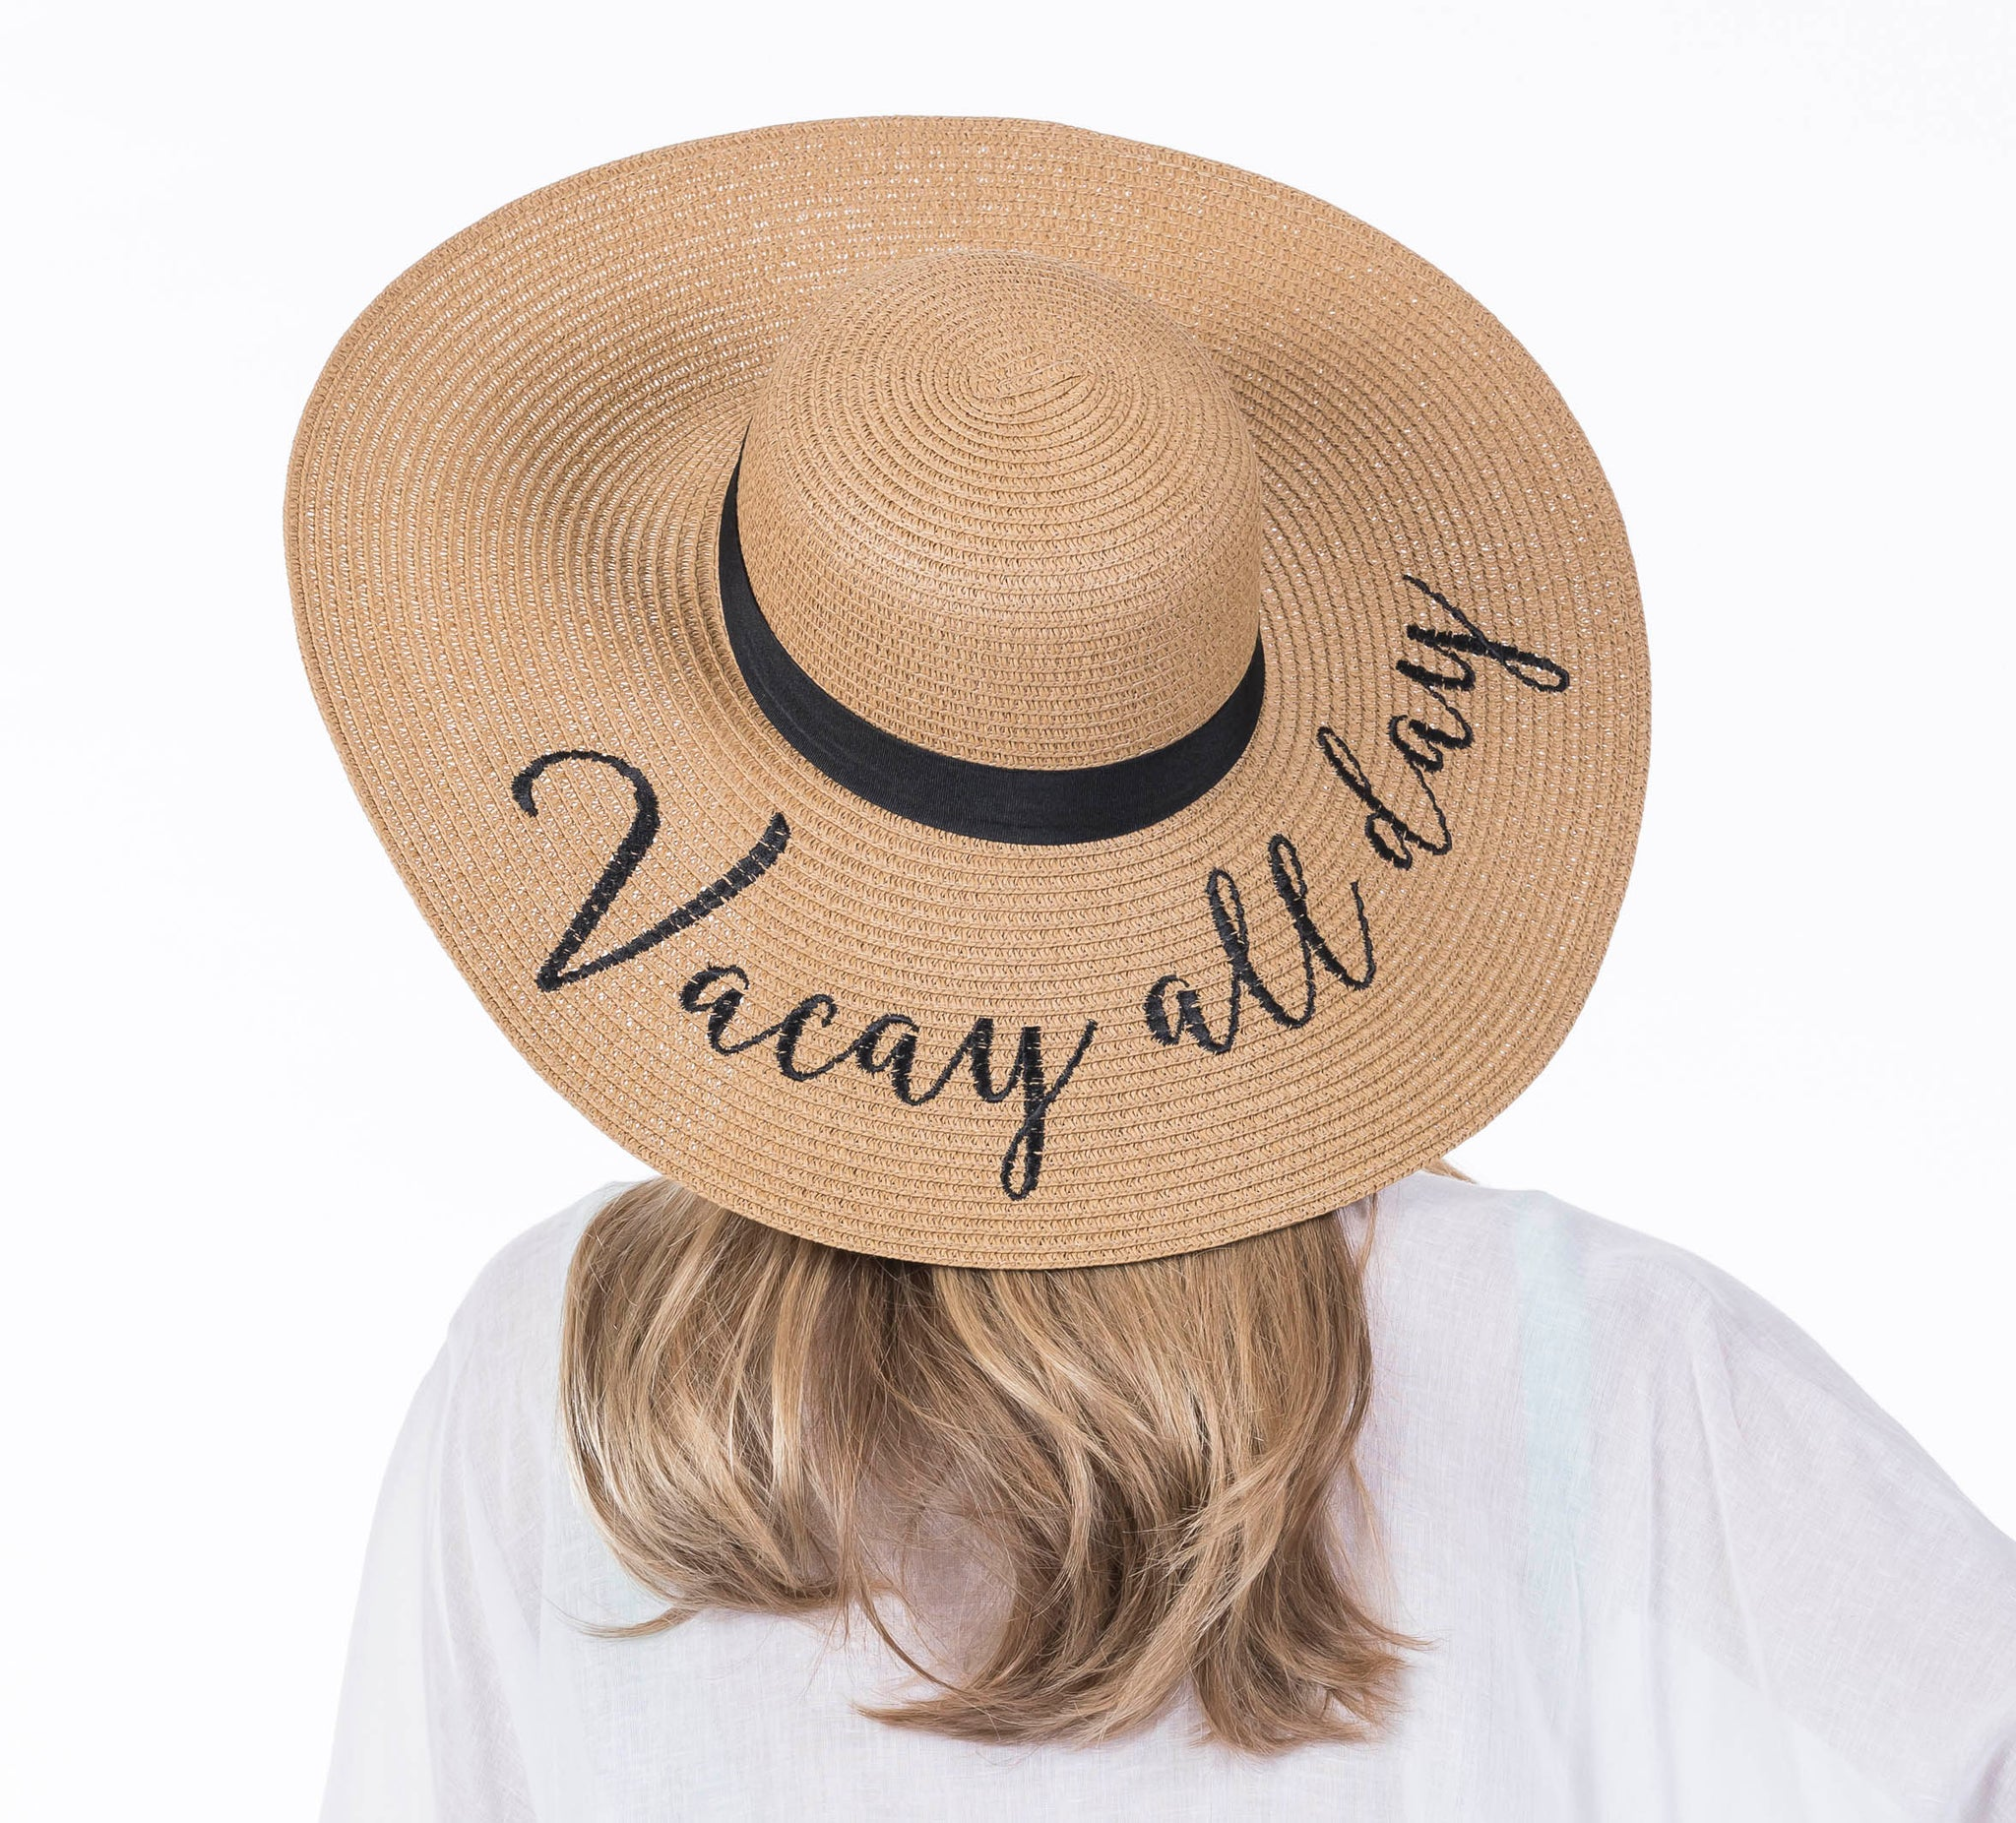 Katydid Vacay All Day Wholesale Sun Hats for Women